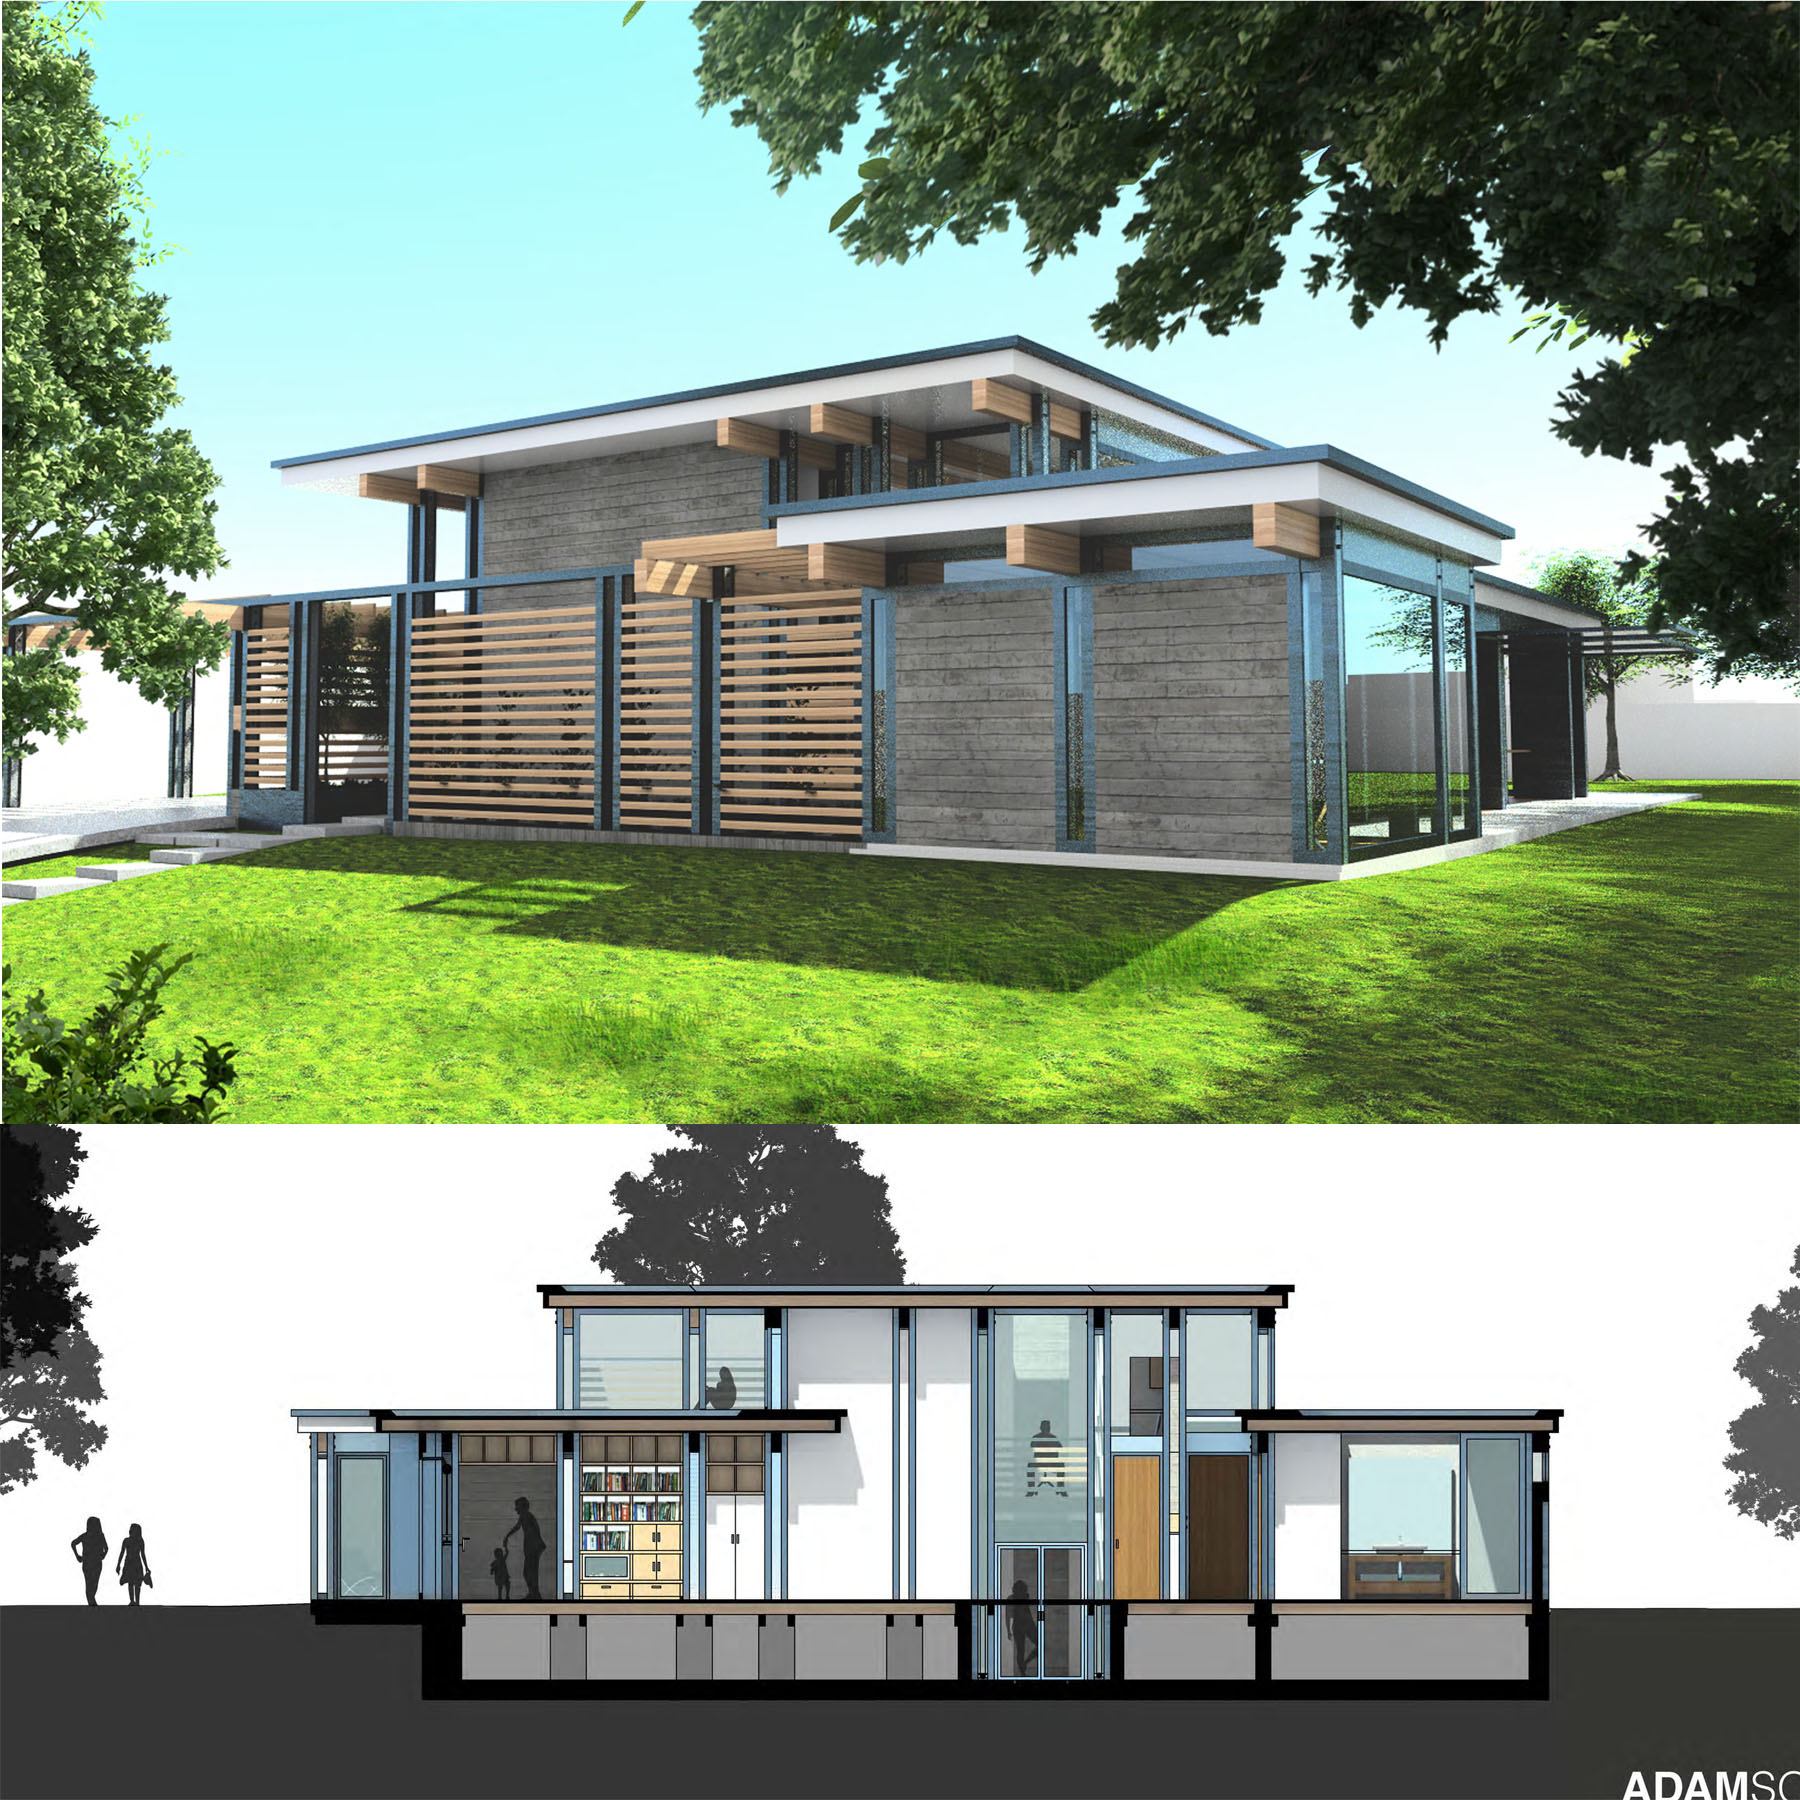 Rendering and section of house design